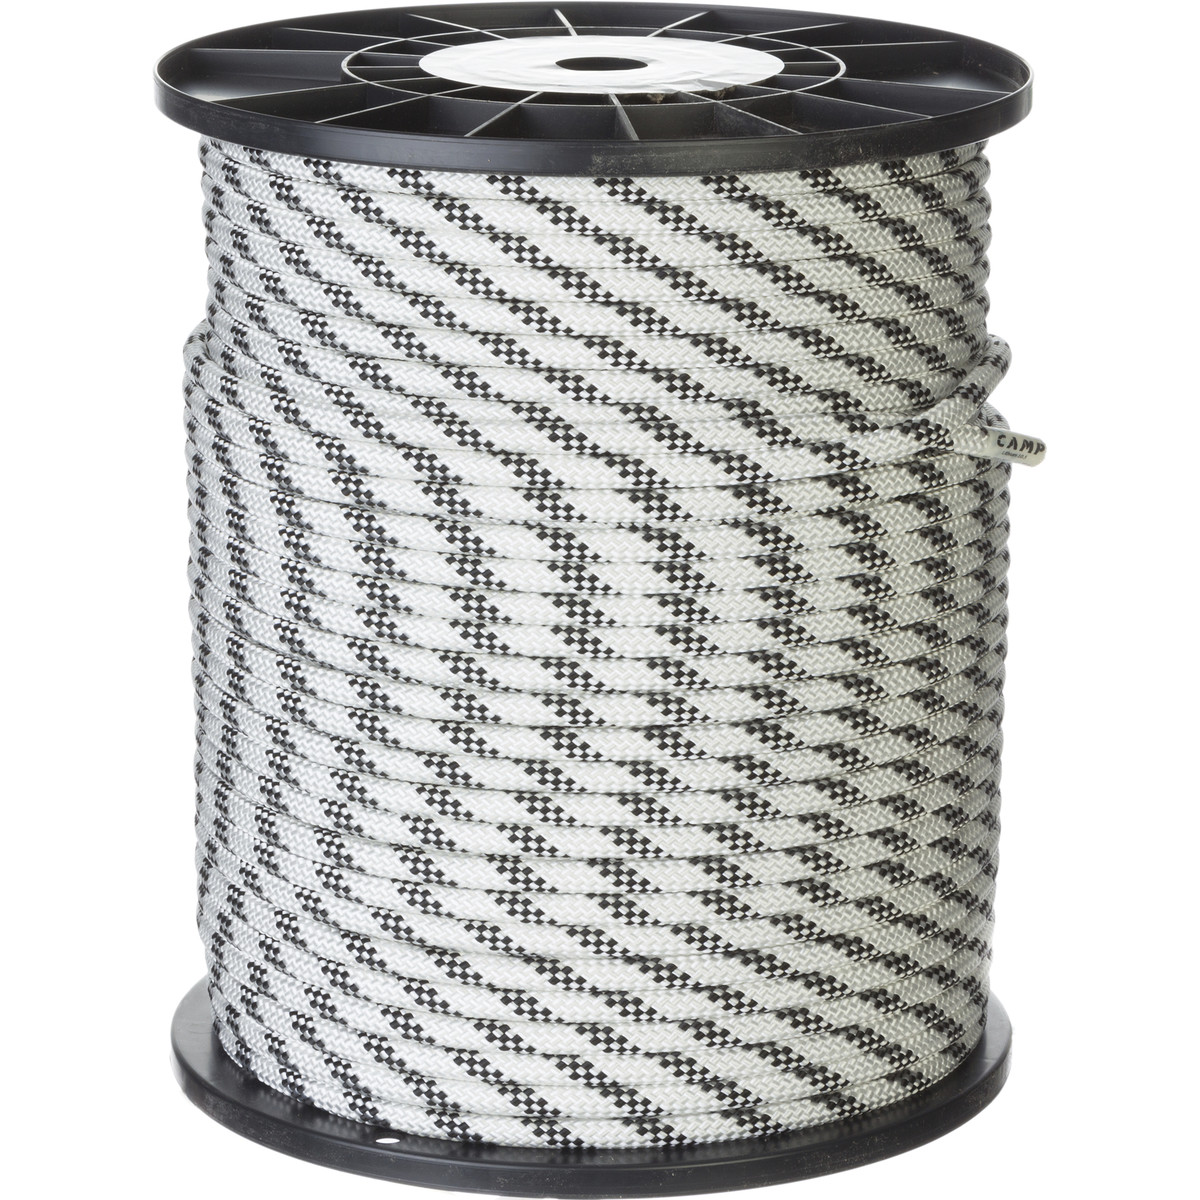 CAMP Lithium Static Rope 10.5mm